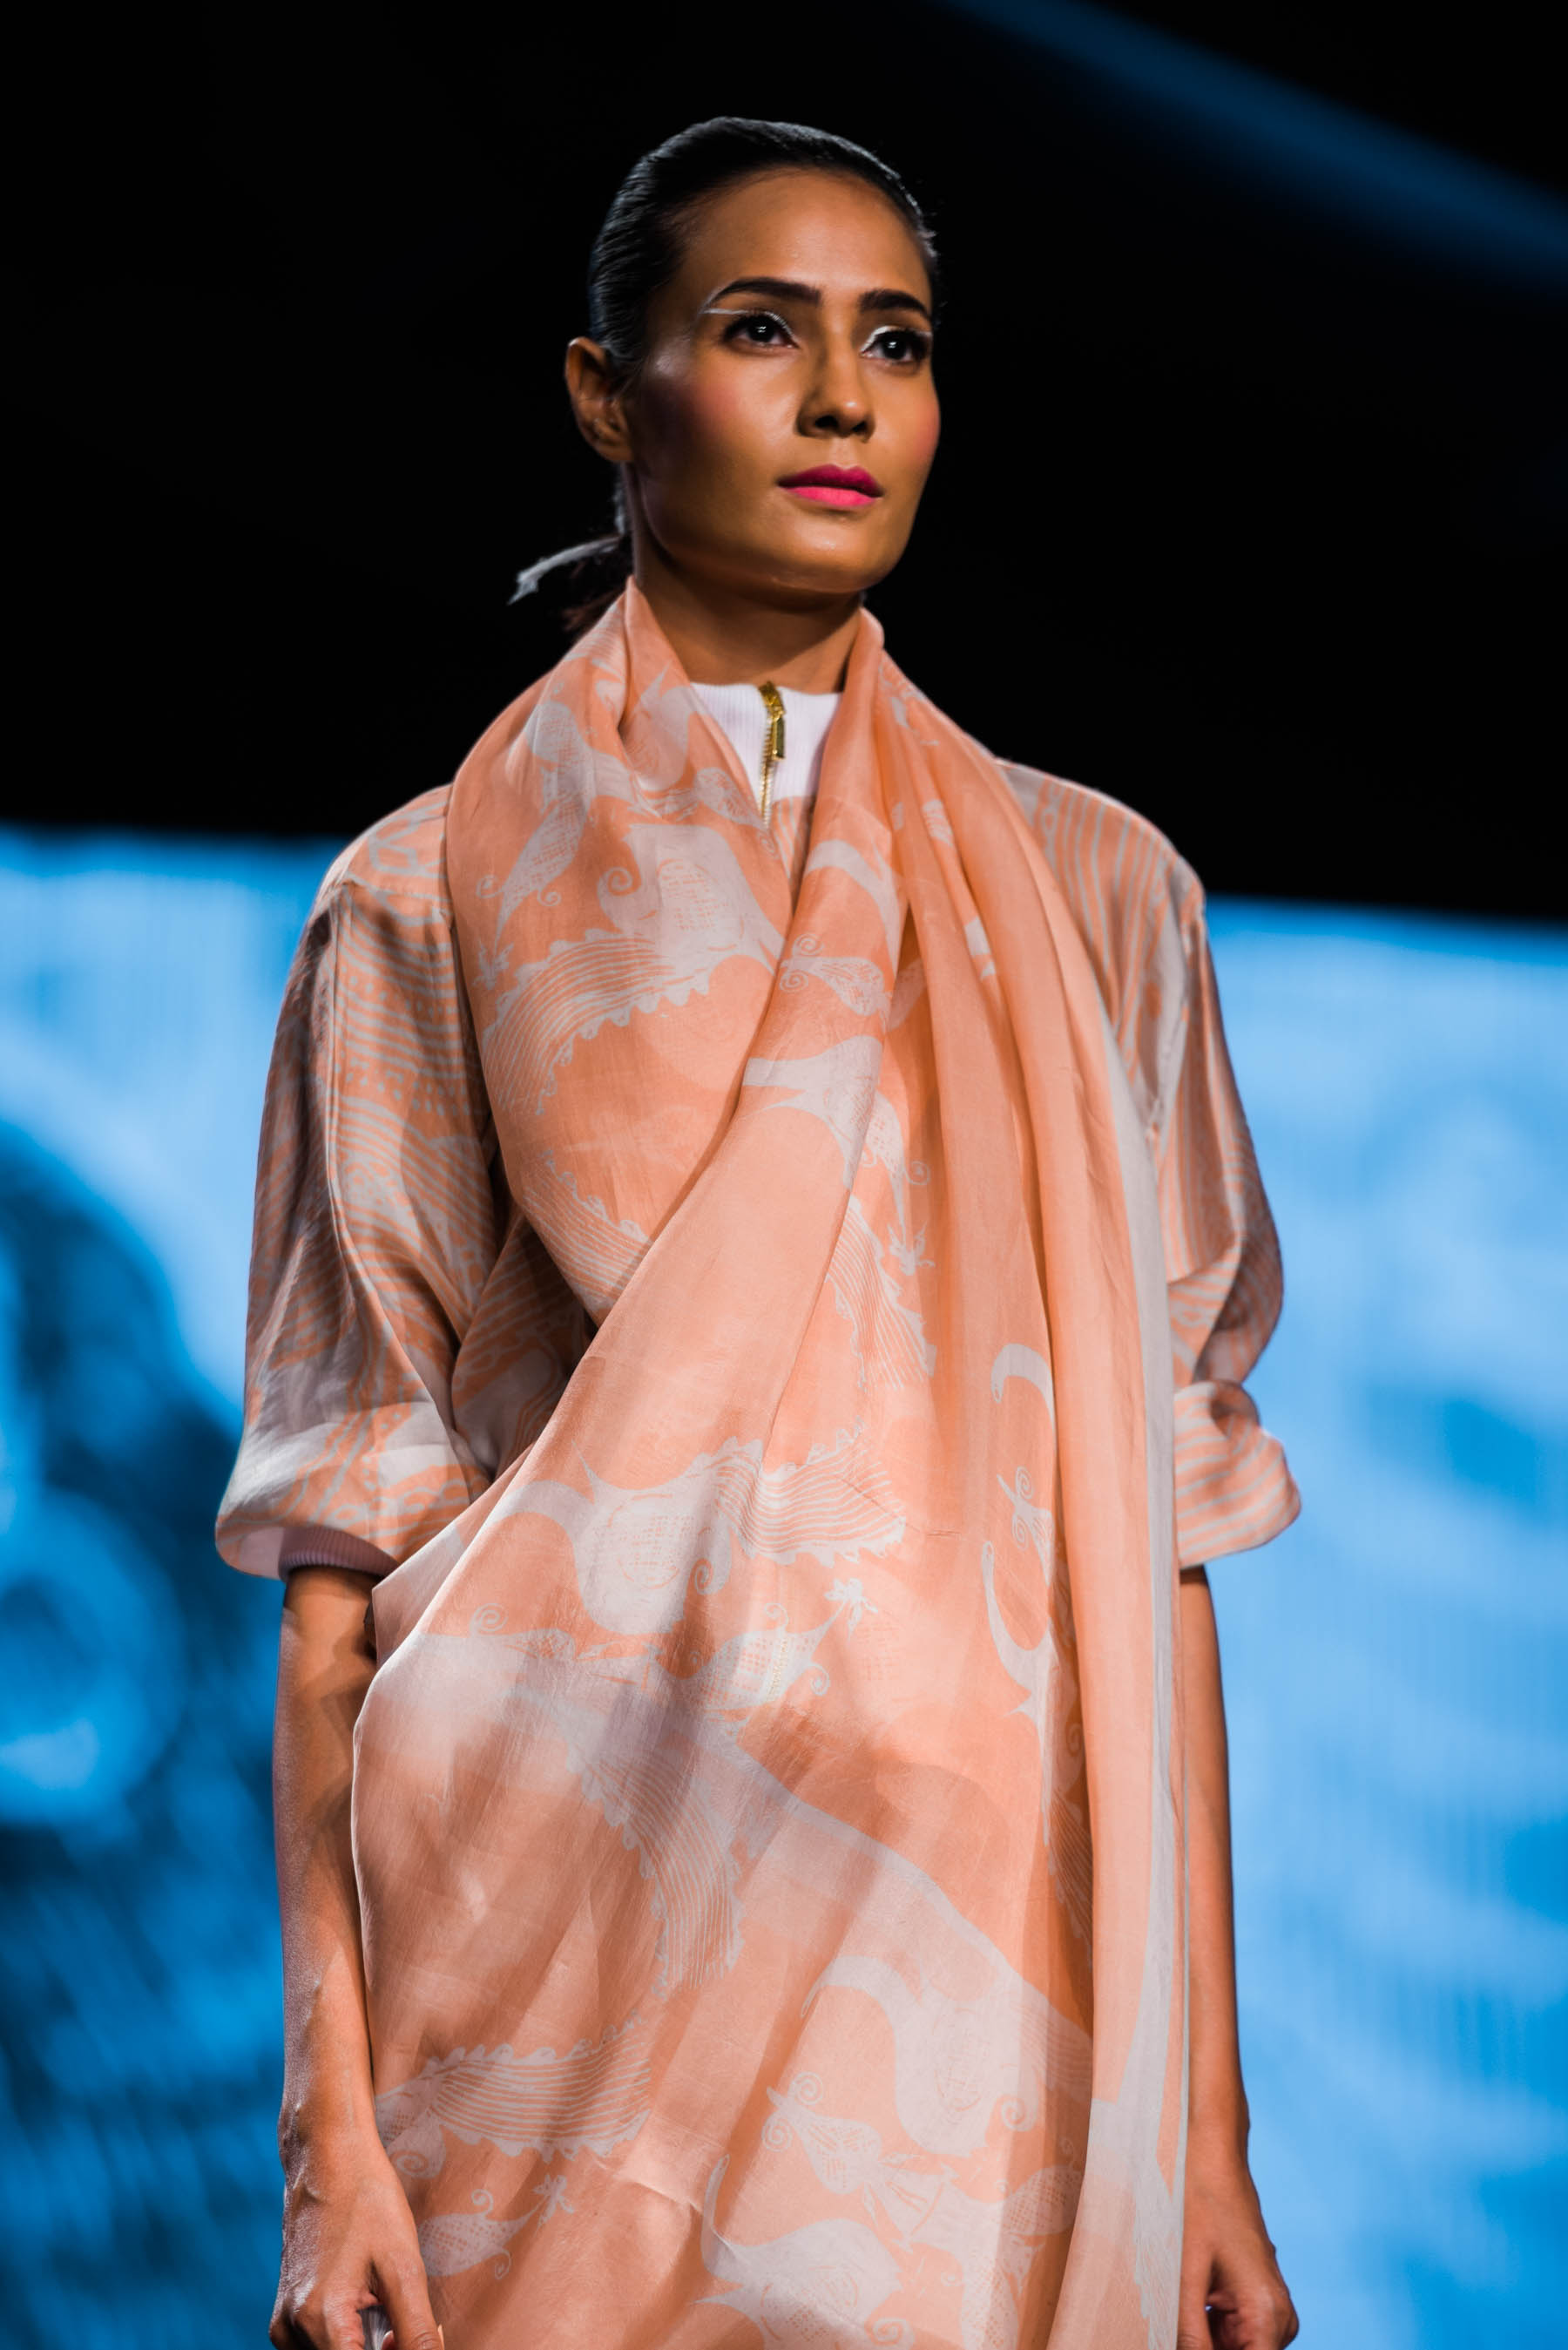 Naina Redhu, Naina.co, Aartivijay Gupta, Fashion Designer, FDCI, Lotus MakeUp India Fashion Week Spring Summer 2019, LMIFWSS19, LMIFW, India Fashion Week, Fashion Week Delhi, MadeInIndia, Made In India, EyesForFashion, Professional Photographer, Blogger, Fashion Photographer, Lifestyle Photographer, Luxury Photographer, Delhi Photographer, Gurgaon Photographer, Delhi Blogger, Gurgaon Blogger, Indian Blogger